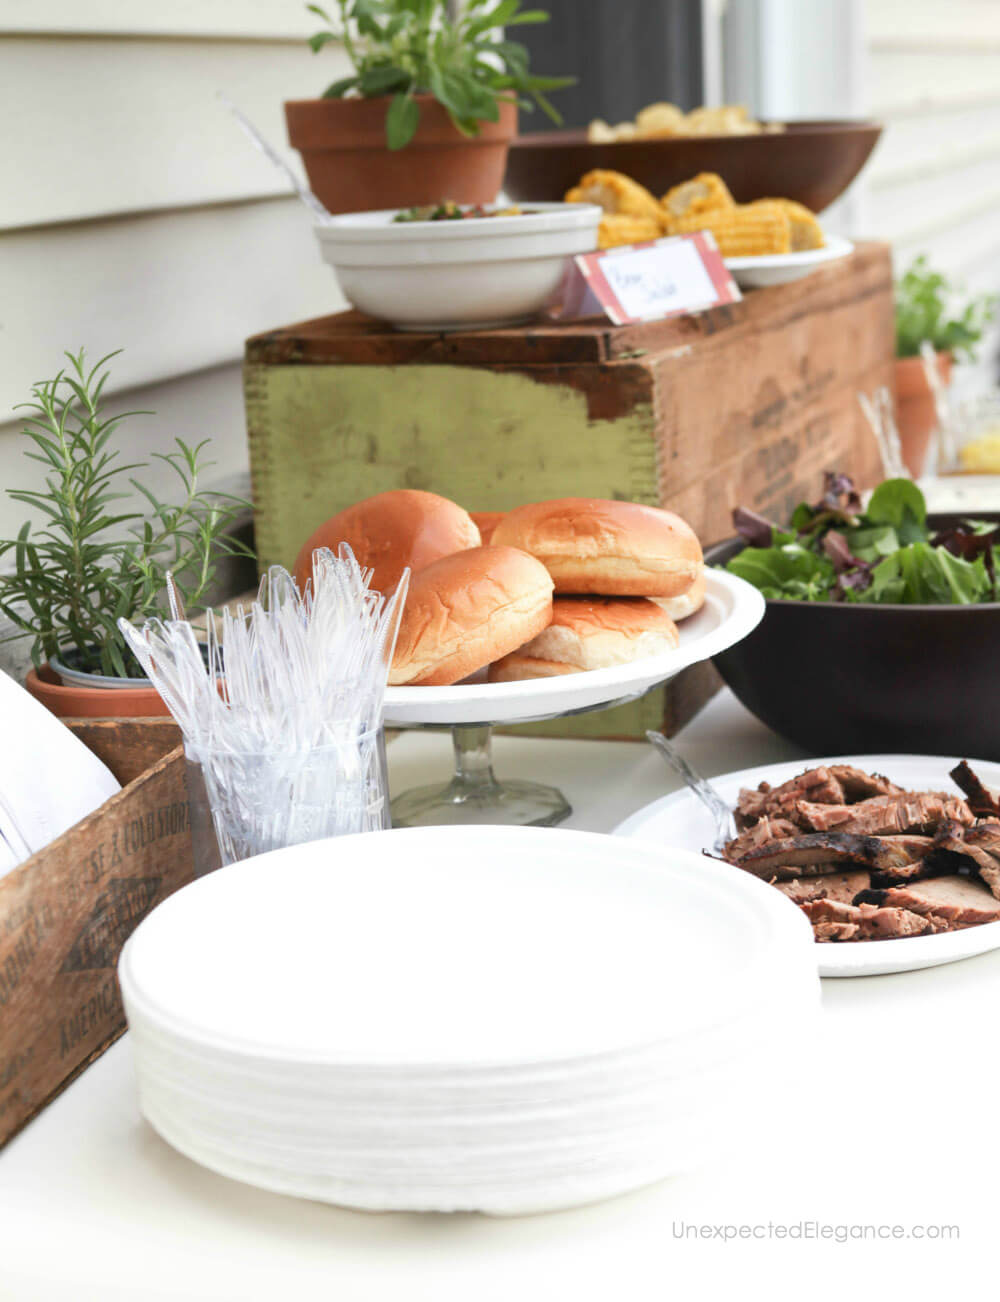 Check out a few tips to help host a summer BBQ without the stress!!